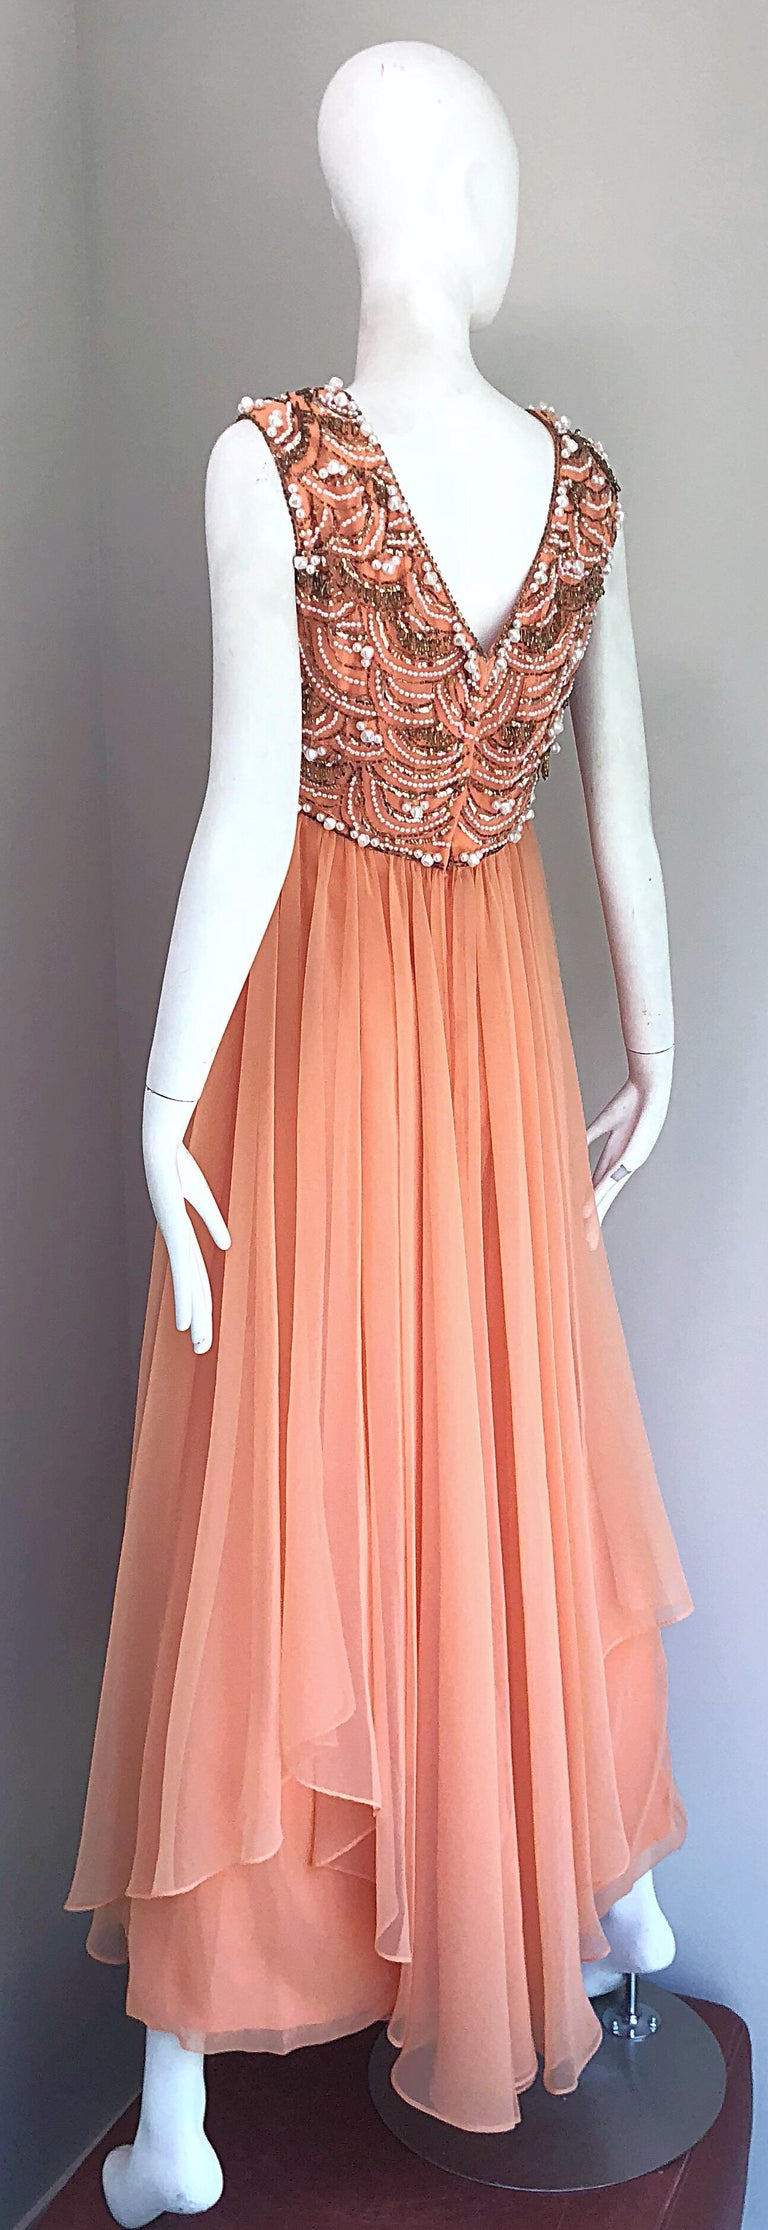 1960s Isabell Gerhart Sherbet Coral Demi Couture Beaded Chiffon 60s Gown Dress For Sale 2